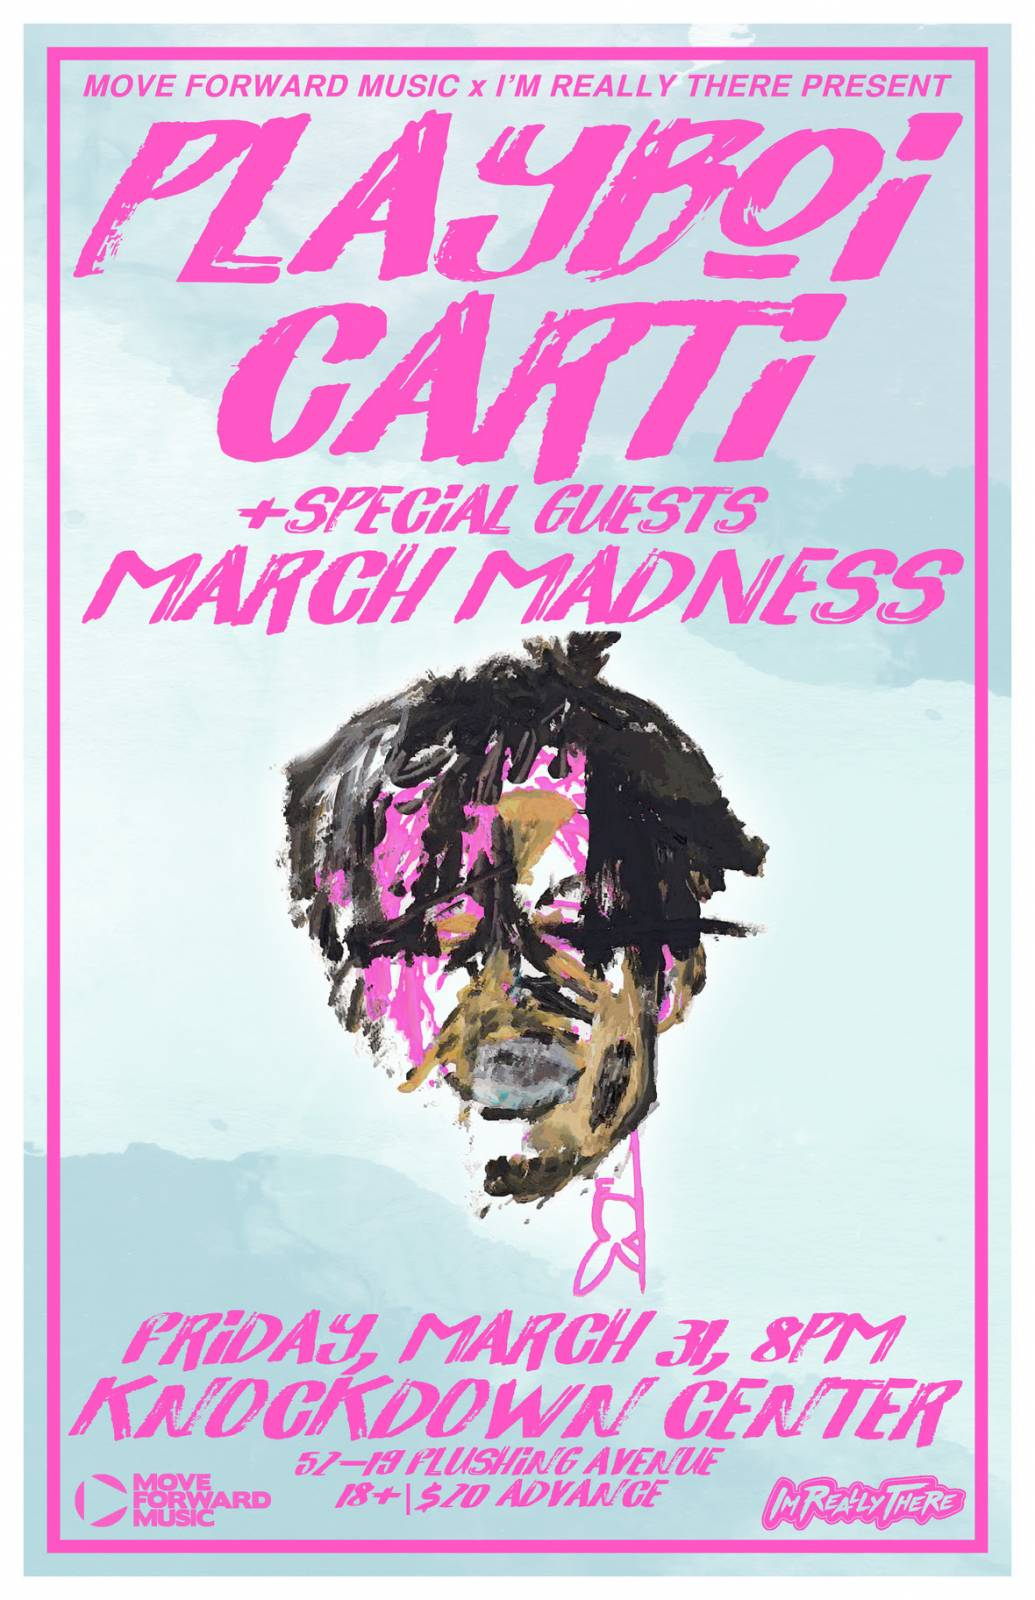 PLAYBOI CARTI & SPECIAL GUESTS AT KNOCKDOWN CENTER [EVENT]